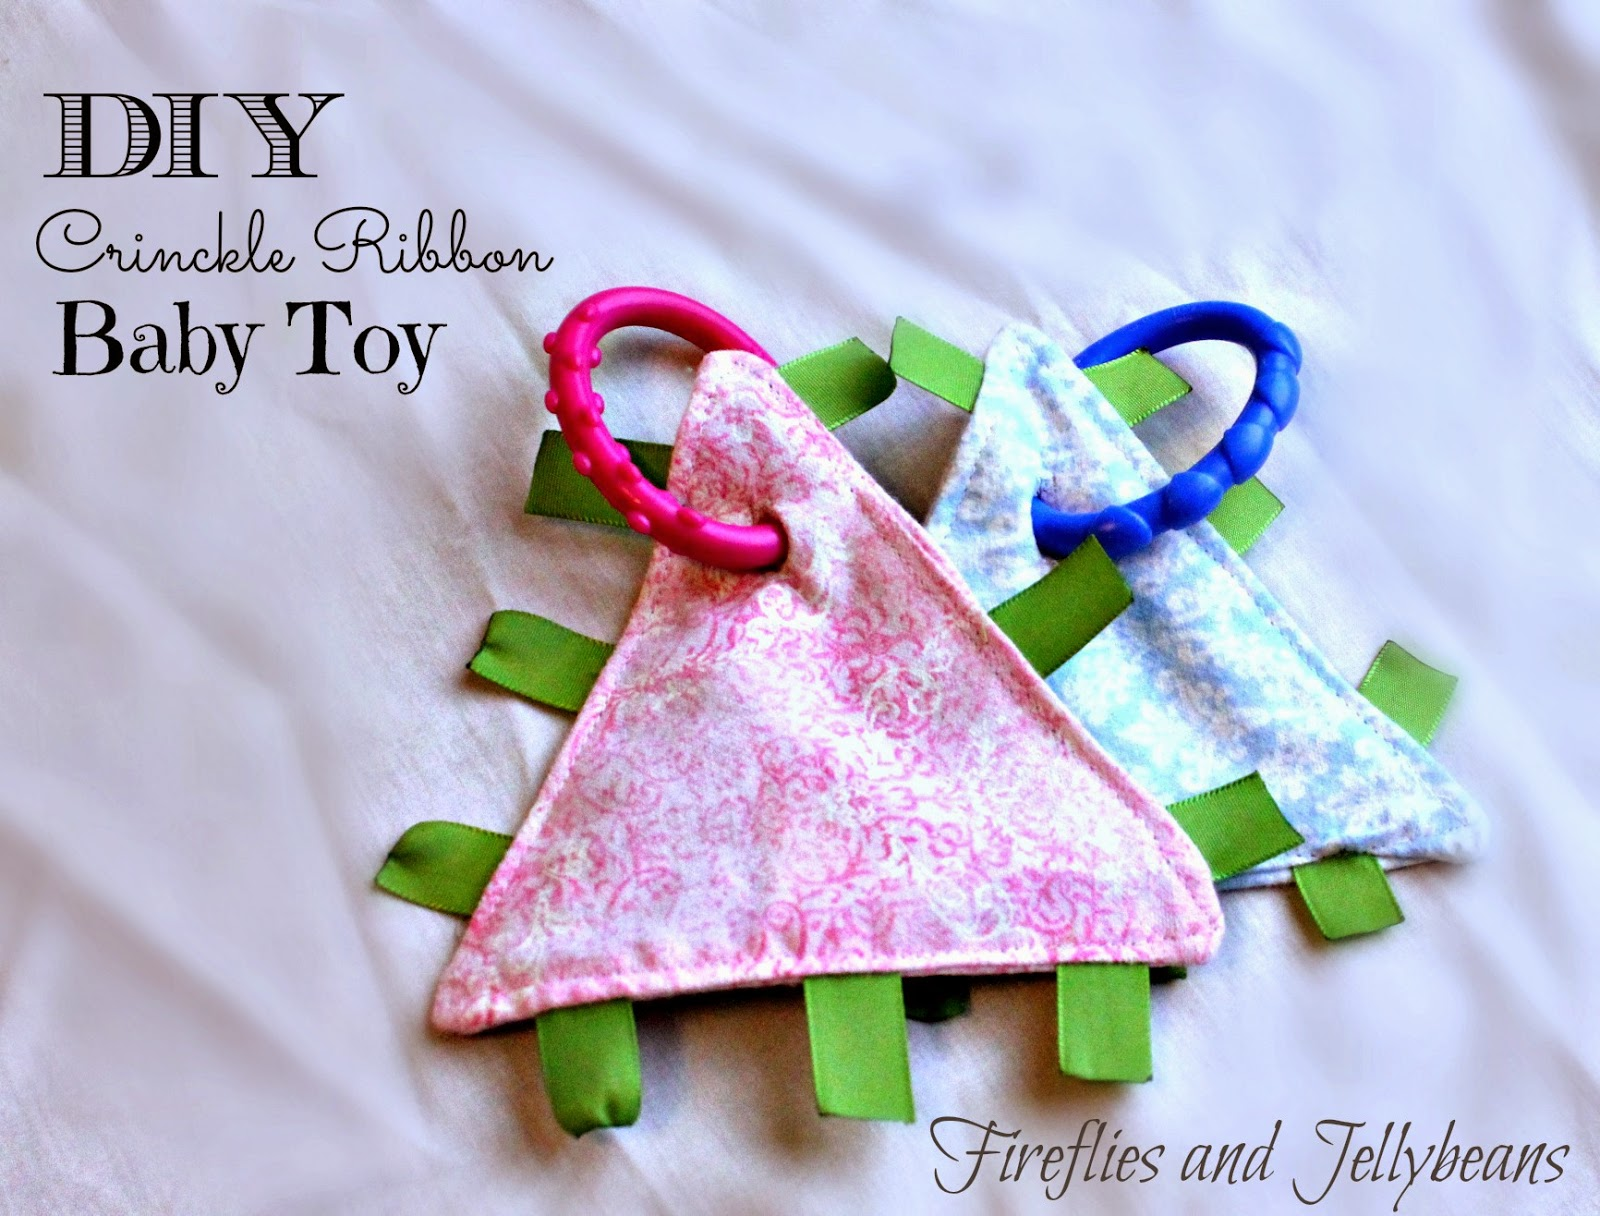 Fireflies and Jellybeans: DIY Crinkle Ribbon Baby Blanket Toy